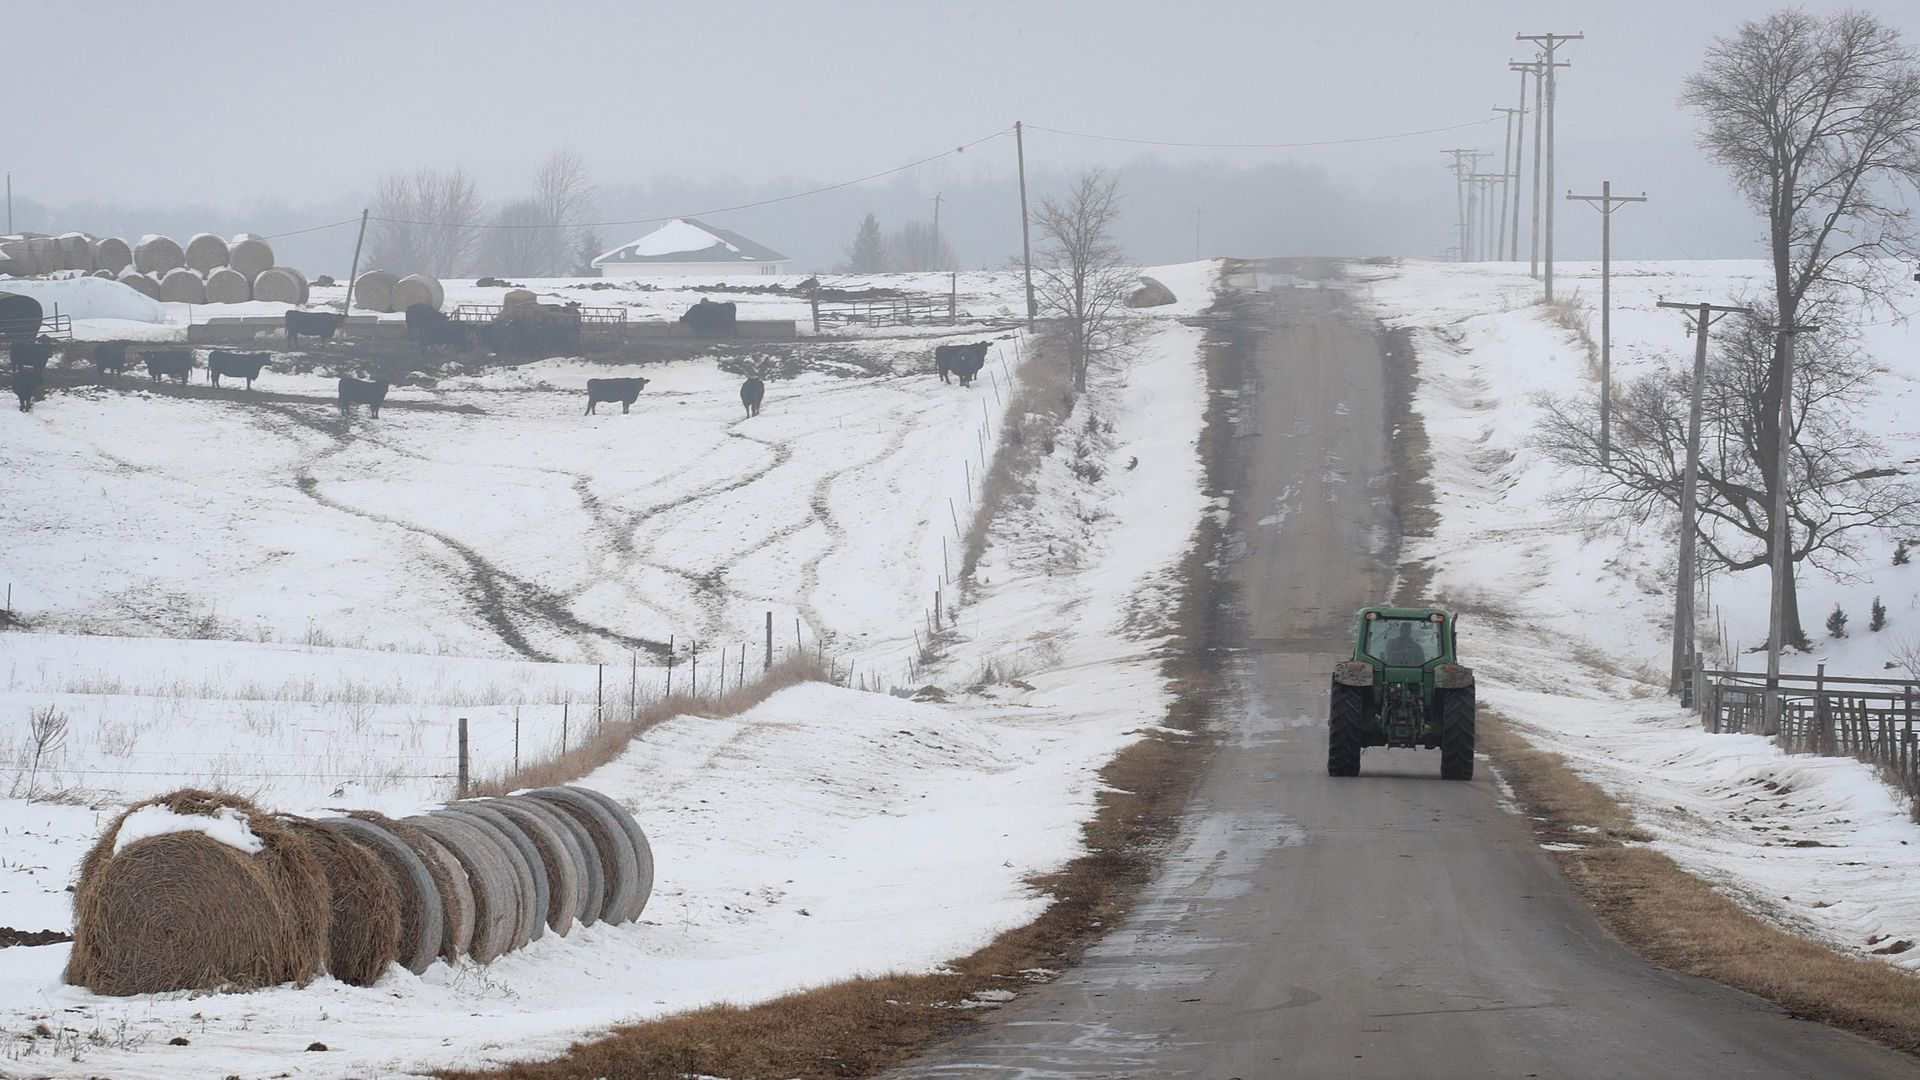 In this image, a tractor drives away from the camera on a snowy one-lane road.